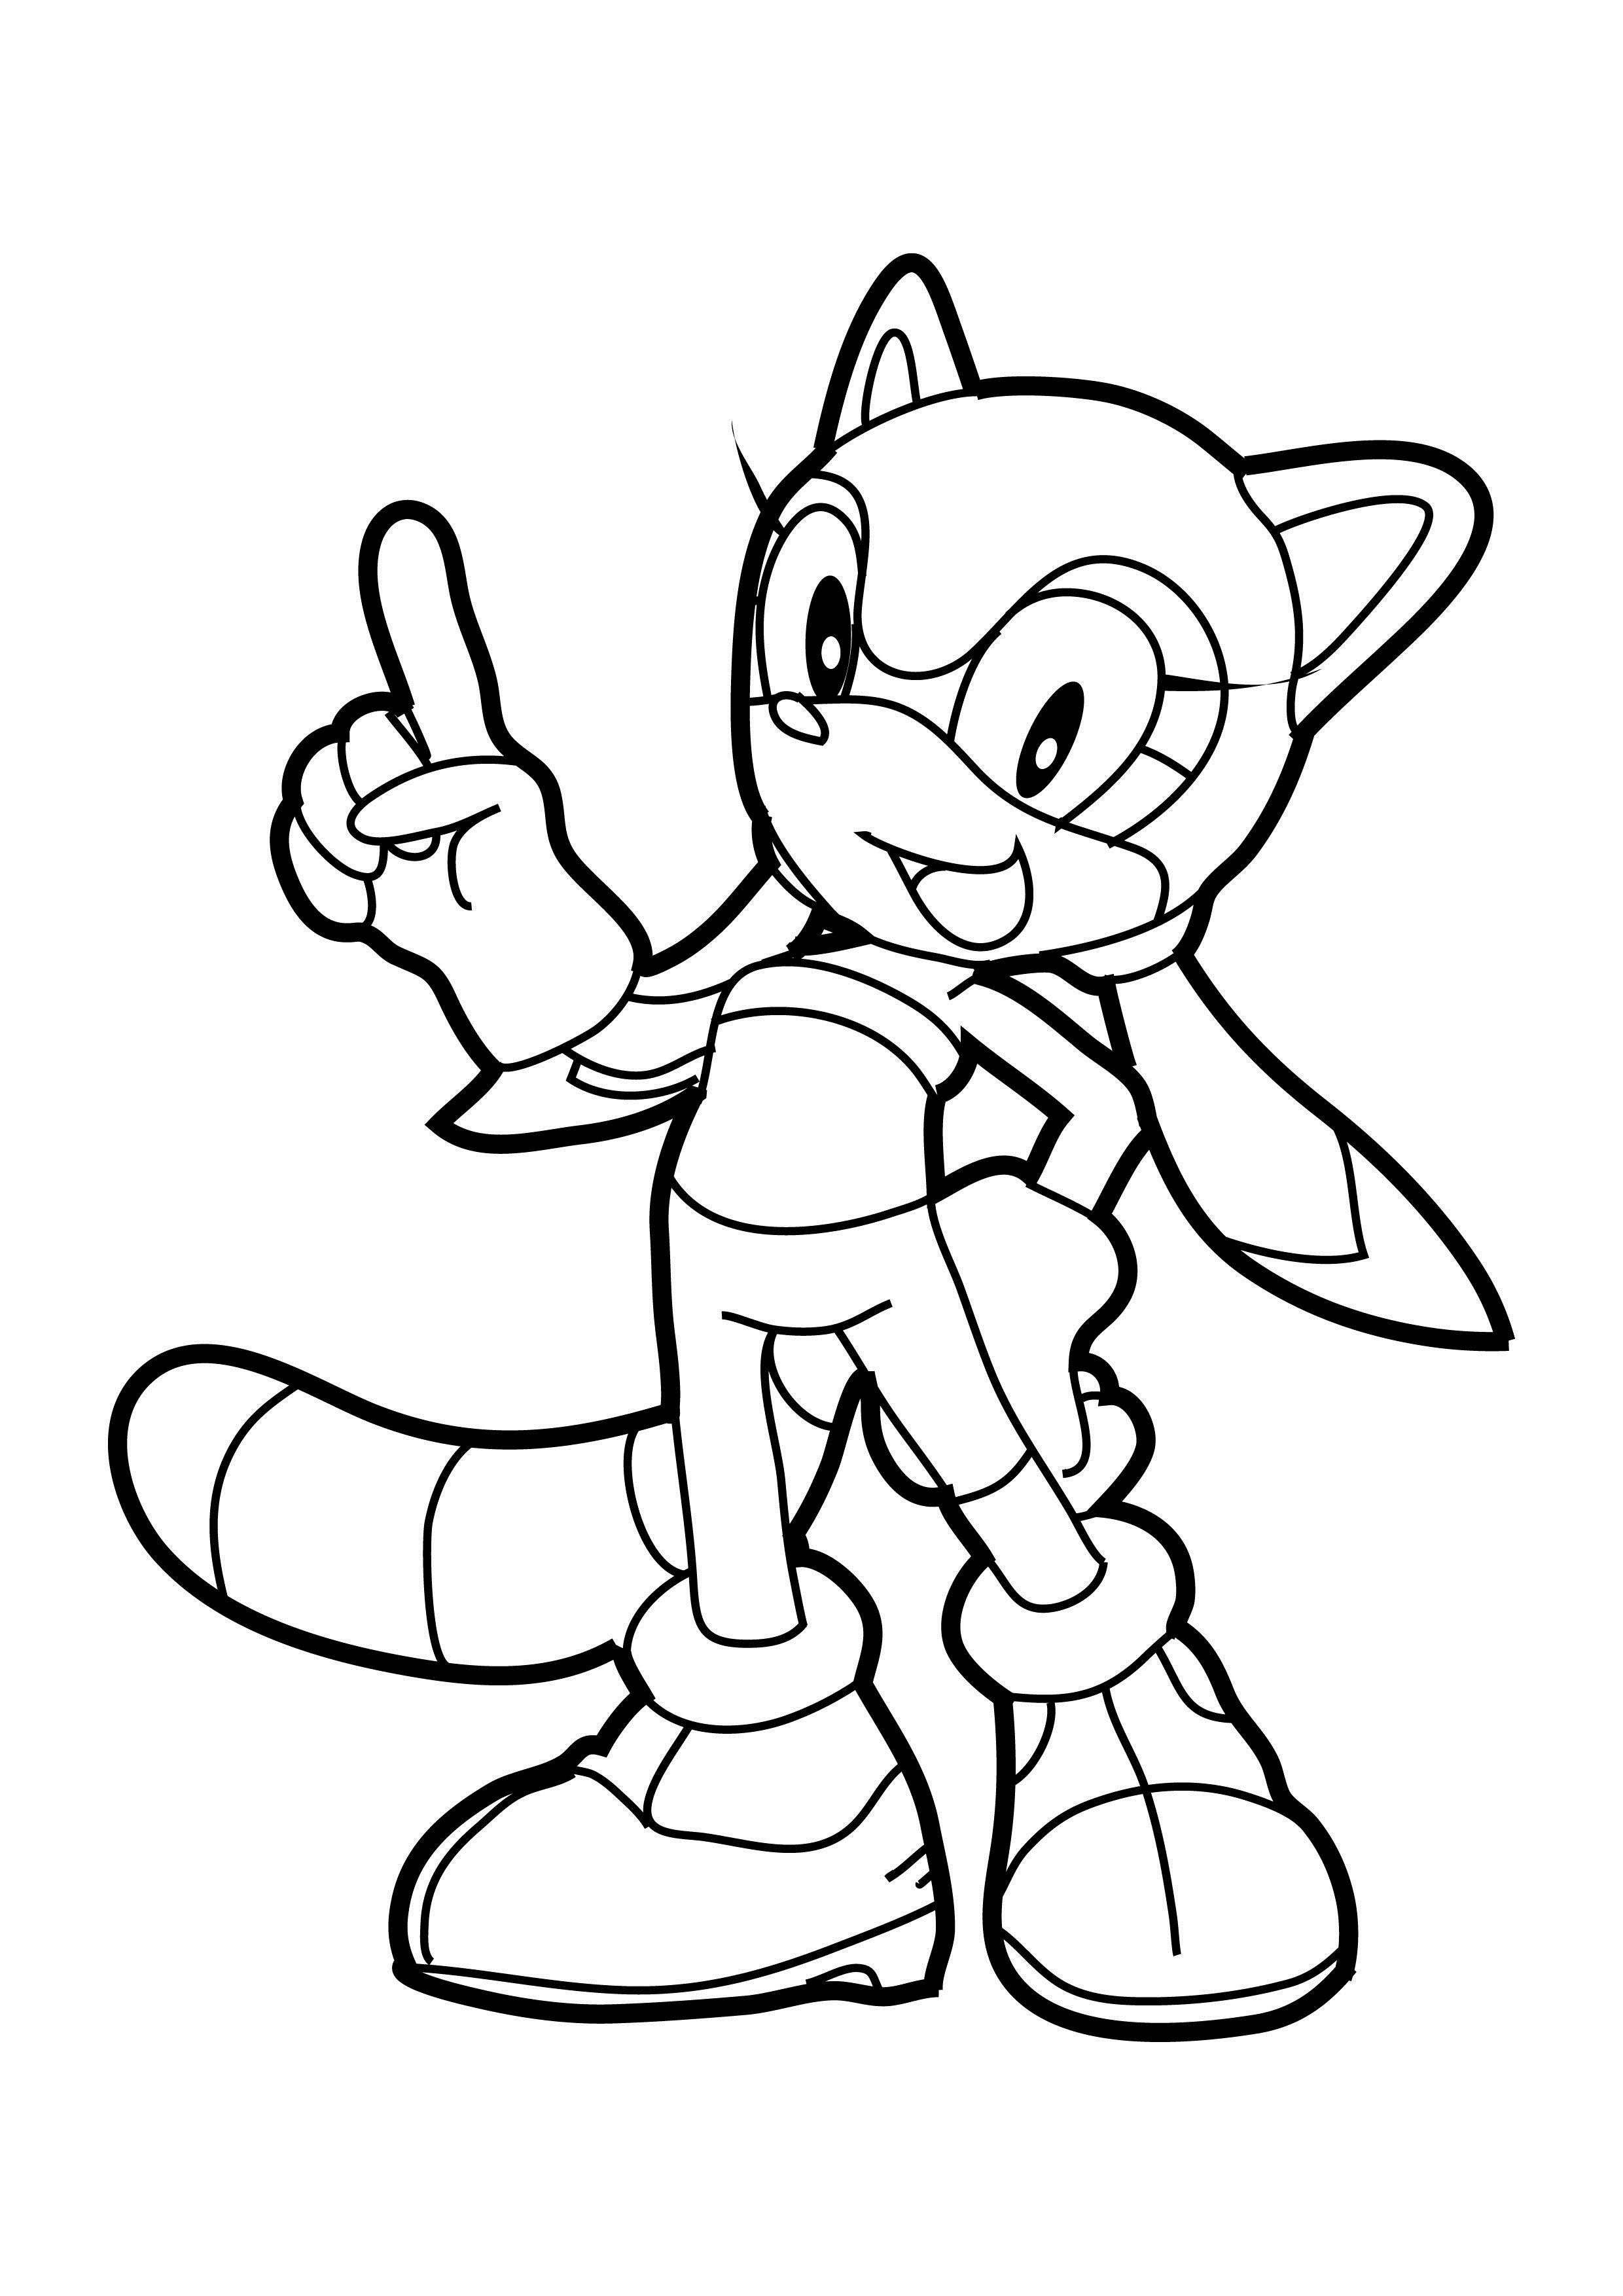 Sonic the hedgehog coloring pages to download and print for free